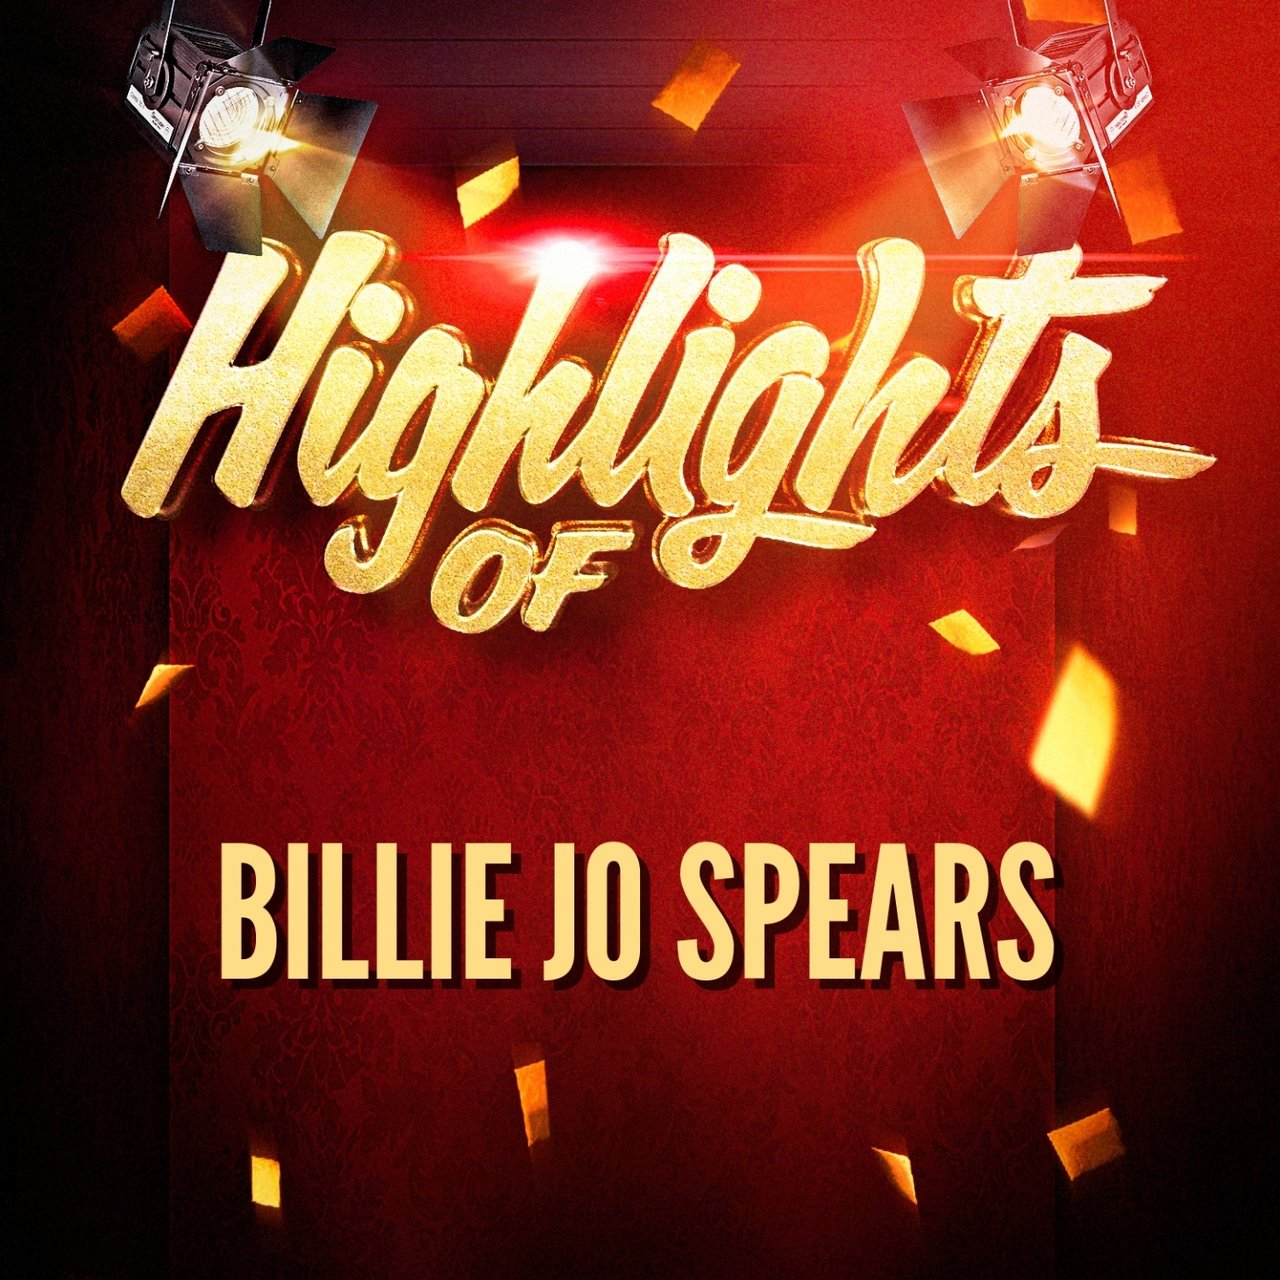 Highlights of Billie Jo Spears